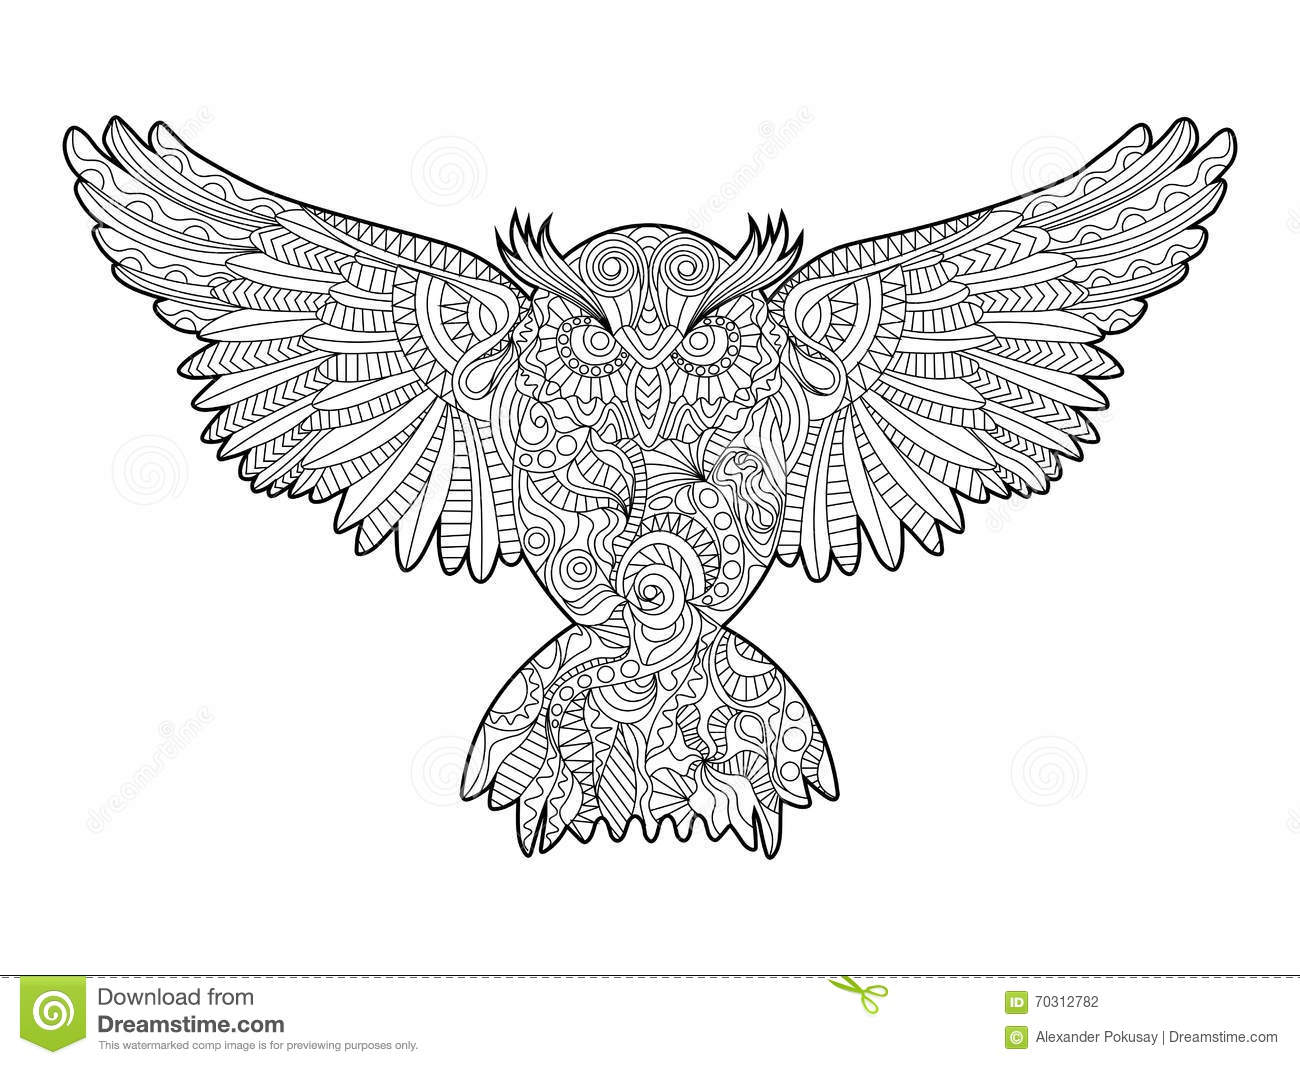 Zen coloring books for adults app - Royalty Free Vector Download Owl Coloring Book For Adults